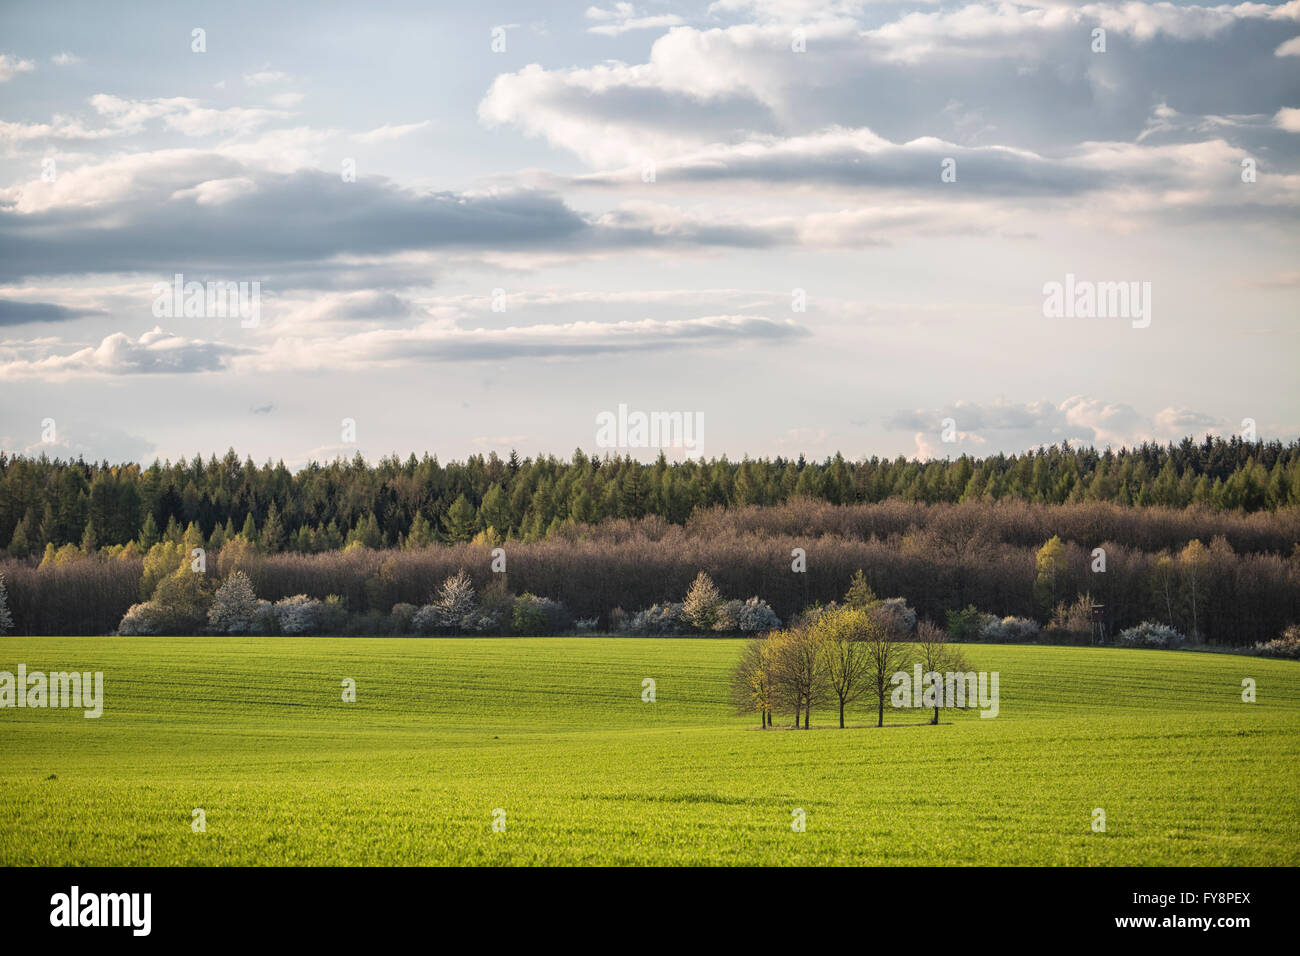 Germany, Brandenburg, Flaeming, field and group of trees, evening light - Stock Image